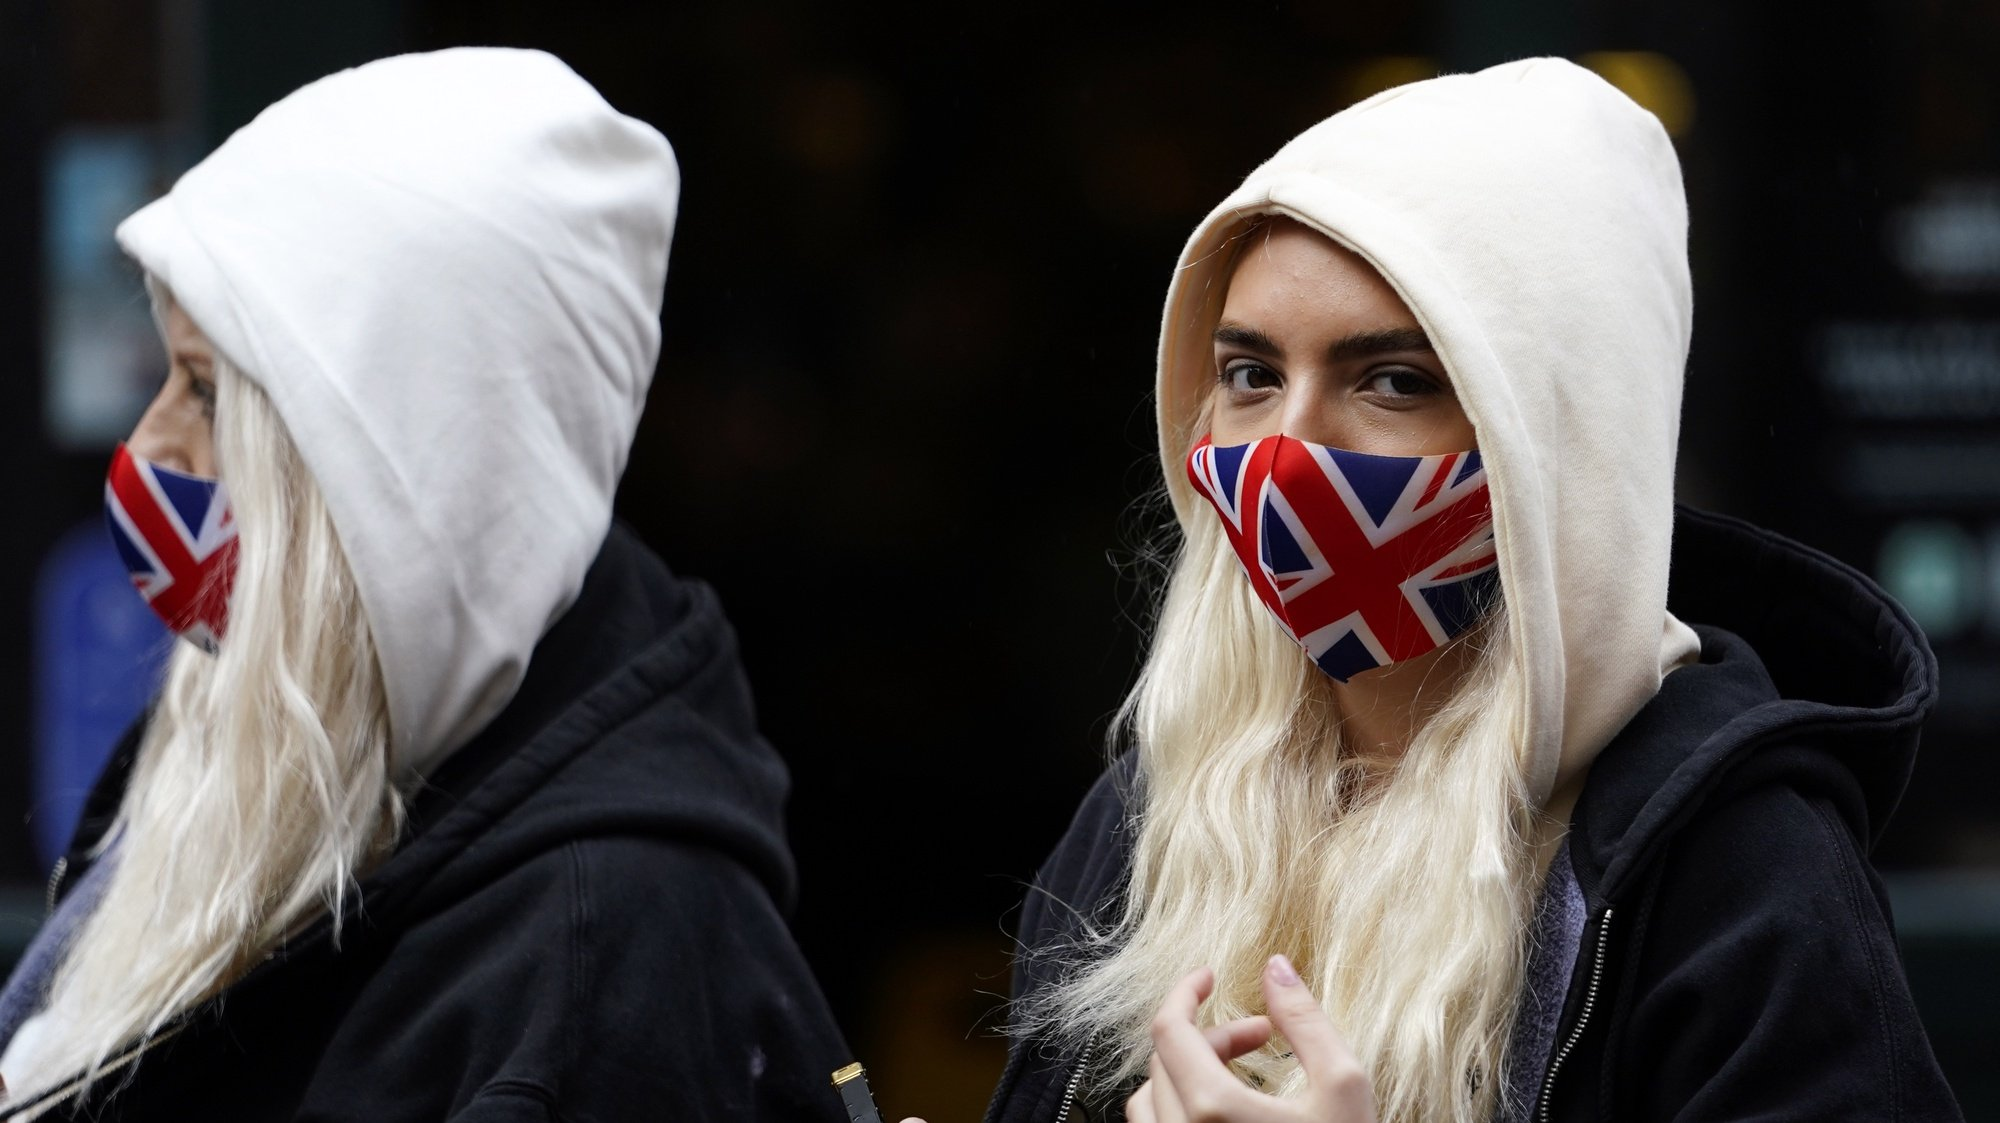 epa08747751 Women wearing Union Jack flag face masks walk in Central London, Britain, 15 October 2020. According to news reports, the UK government is set to impose further restrictions on London, as COVID-19 infections continue to rise. According to recent data from the Office for National Statistics (ONS), COVID-19 deaths in England have risen four fold over the last month.  EPA/WILL OLIVER